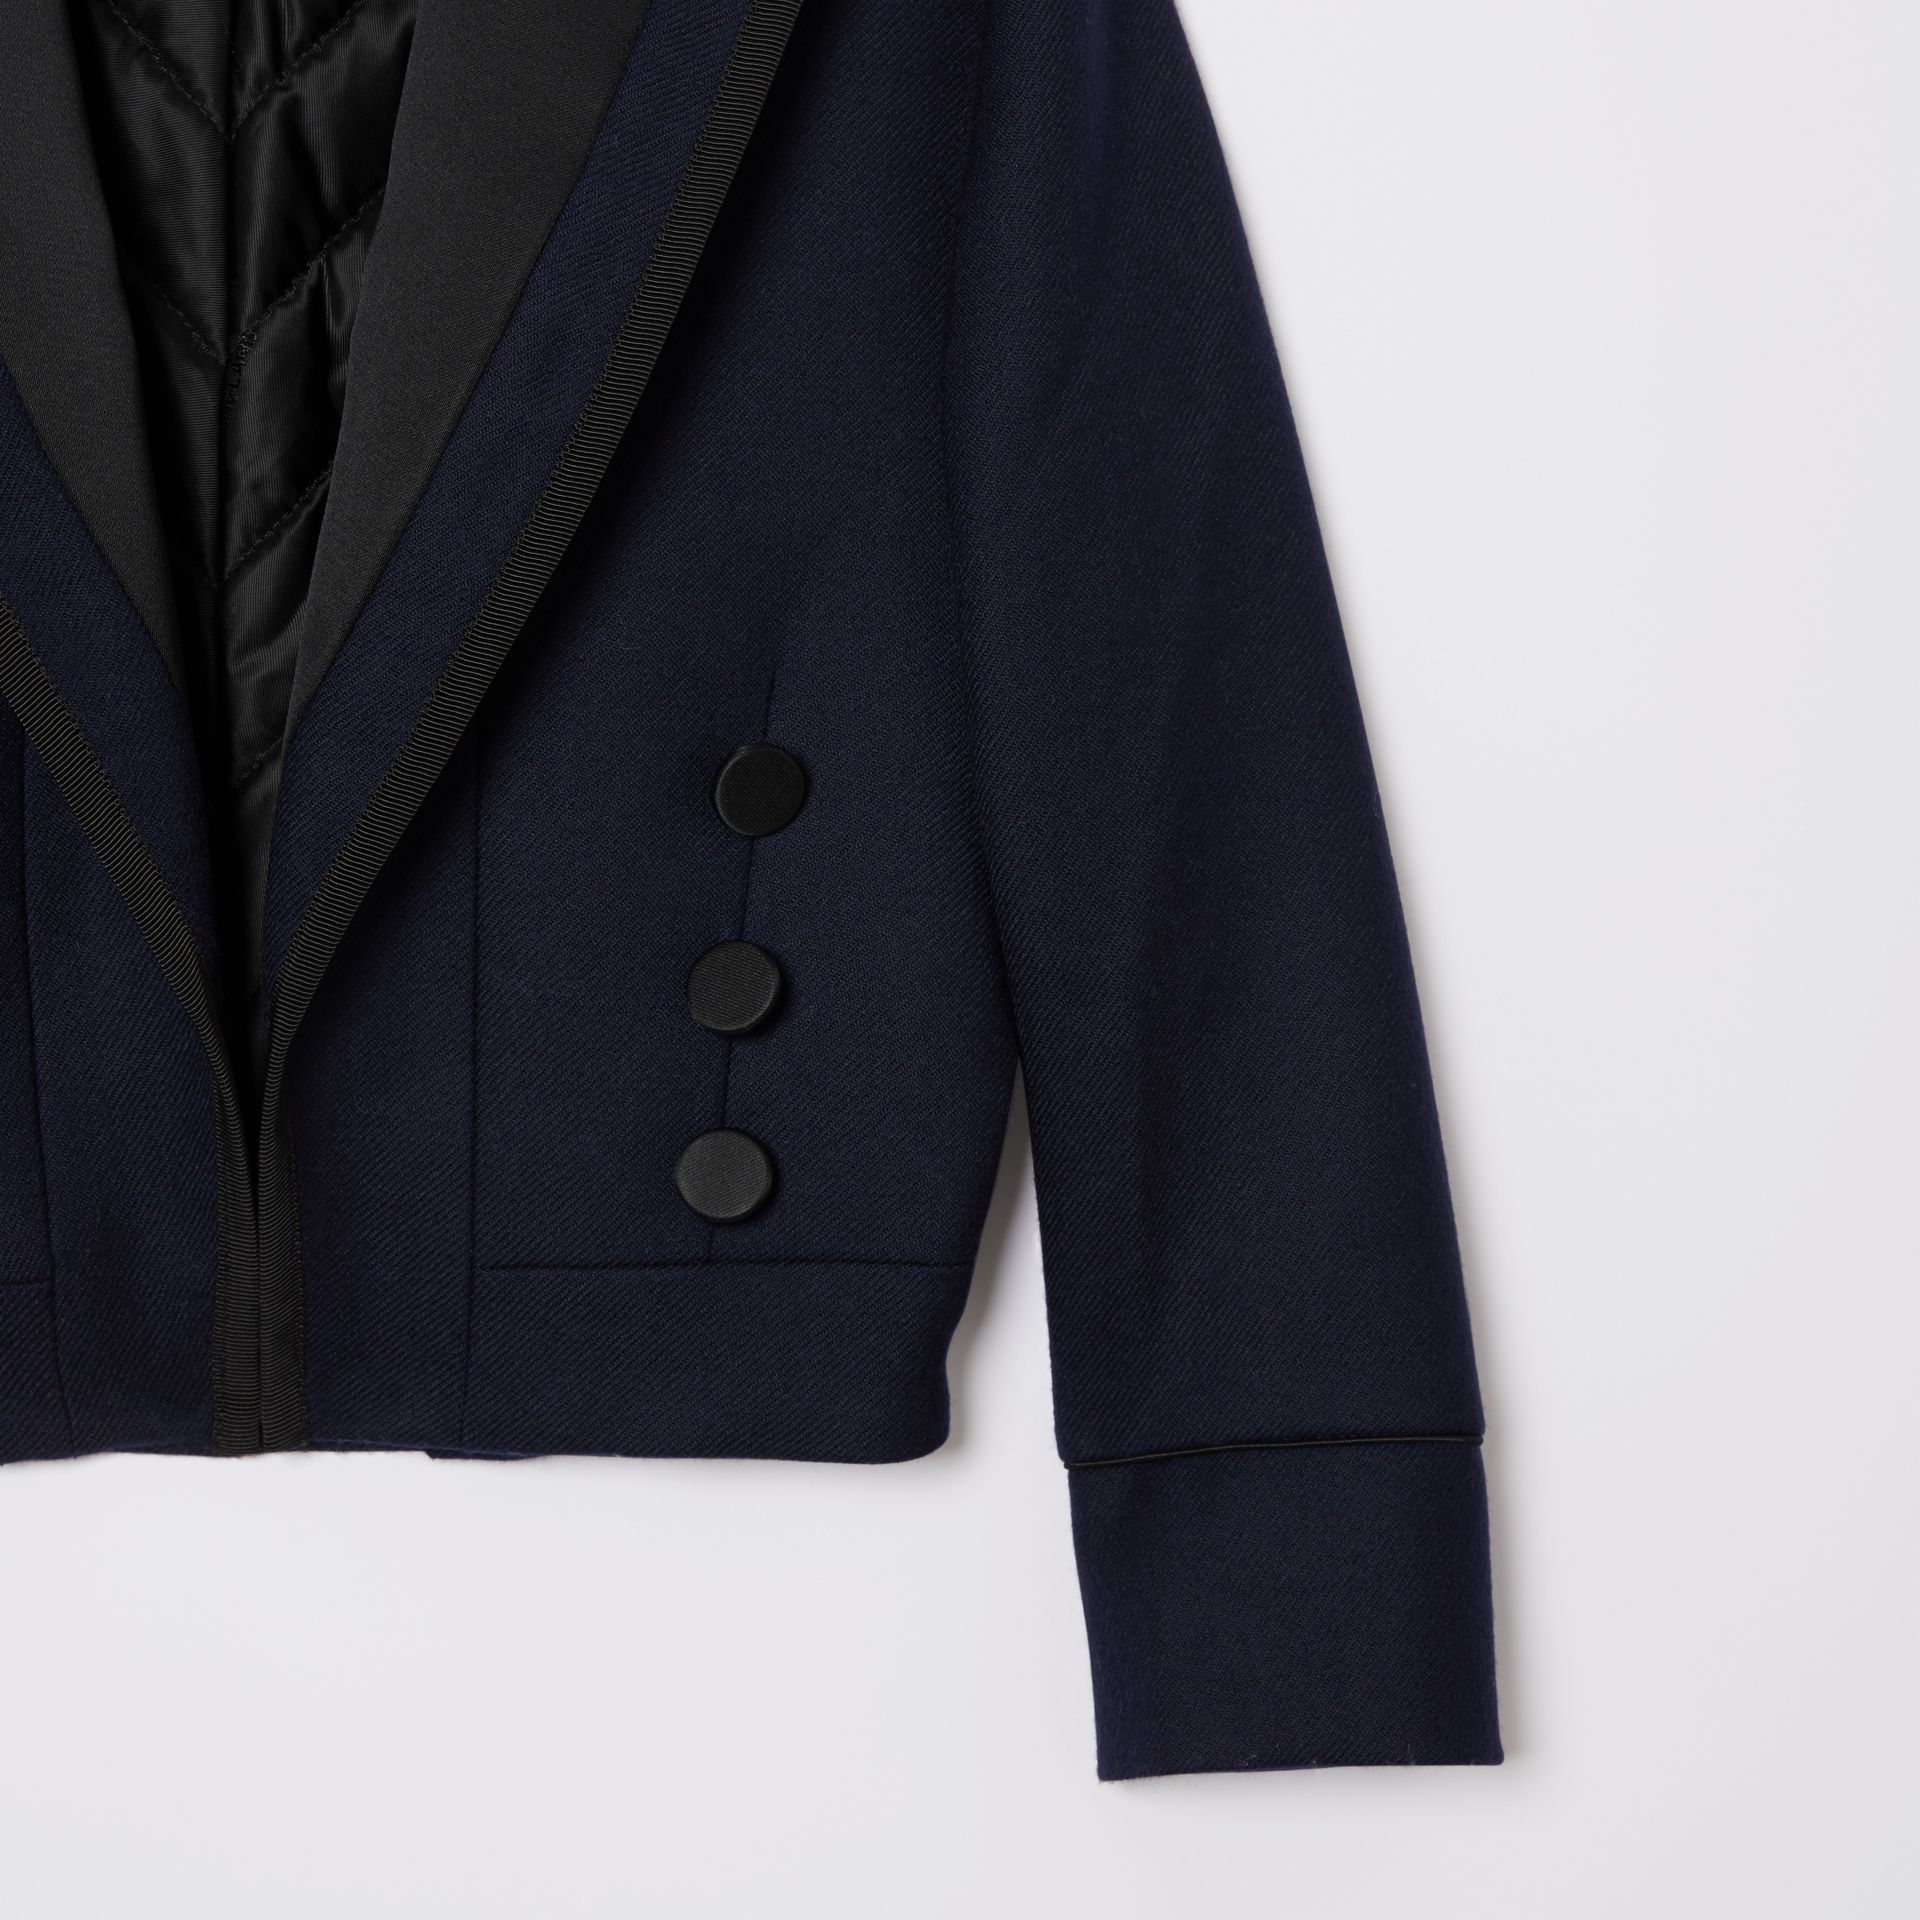 Satin Trim Wool Twill Tailored Jacket in Navy | Burberry Australia - gallery image 4